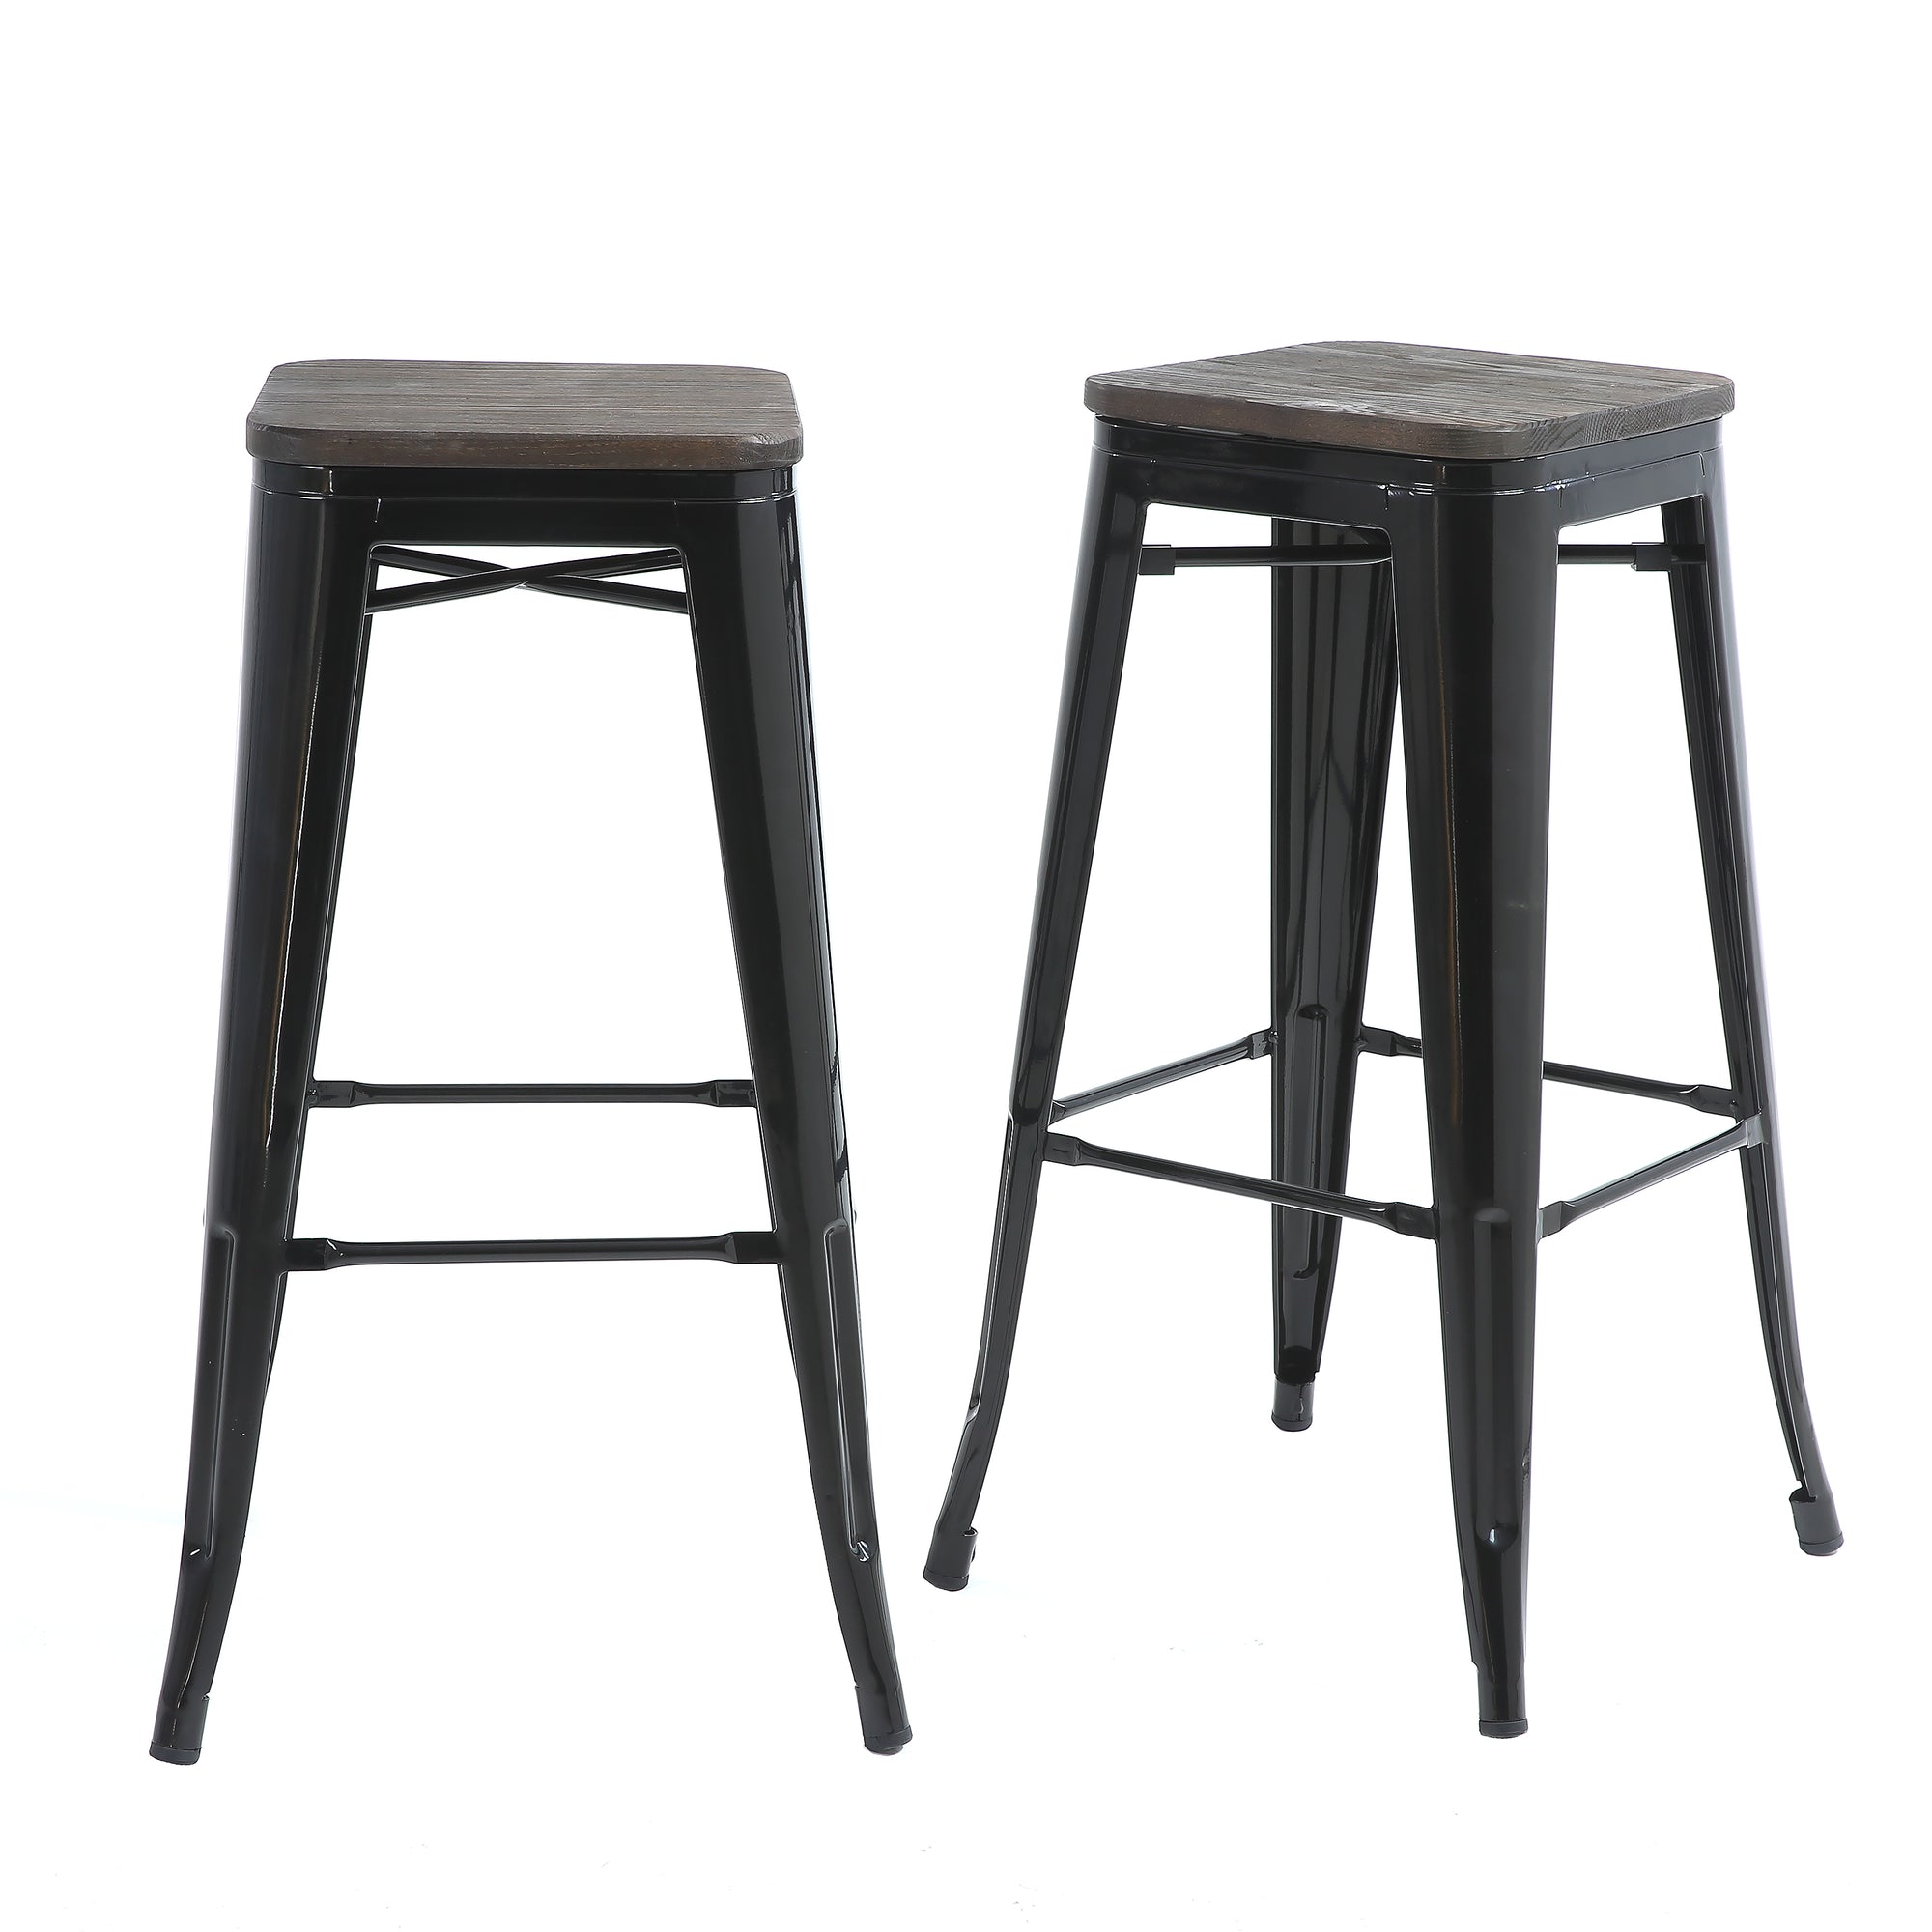 Peachy Buschman Set Of 2 Black Wooden Seat 30 Inch Bar Height Metal Bar Stools Indoor Outdoor Stackable Pabps2019 Chair Design Images Pabps2019Com